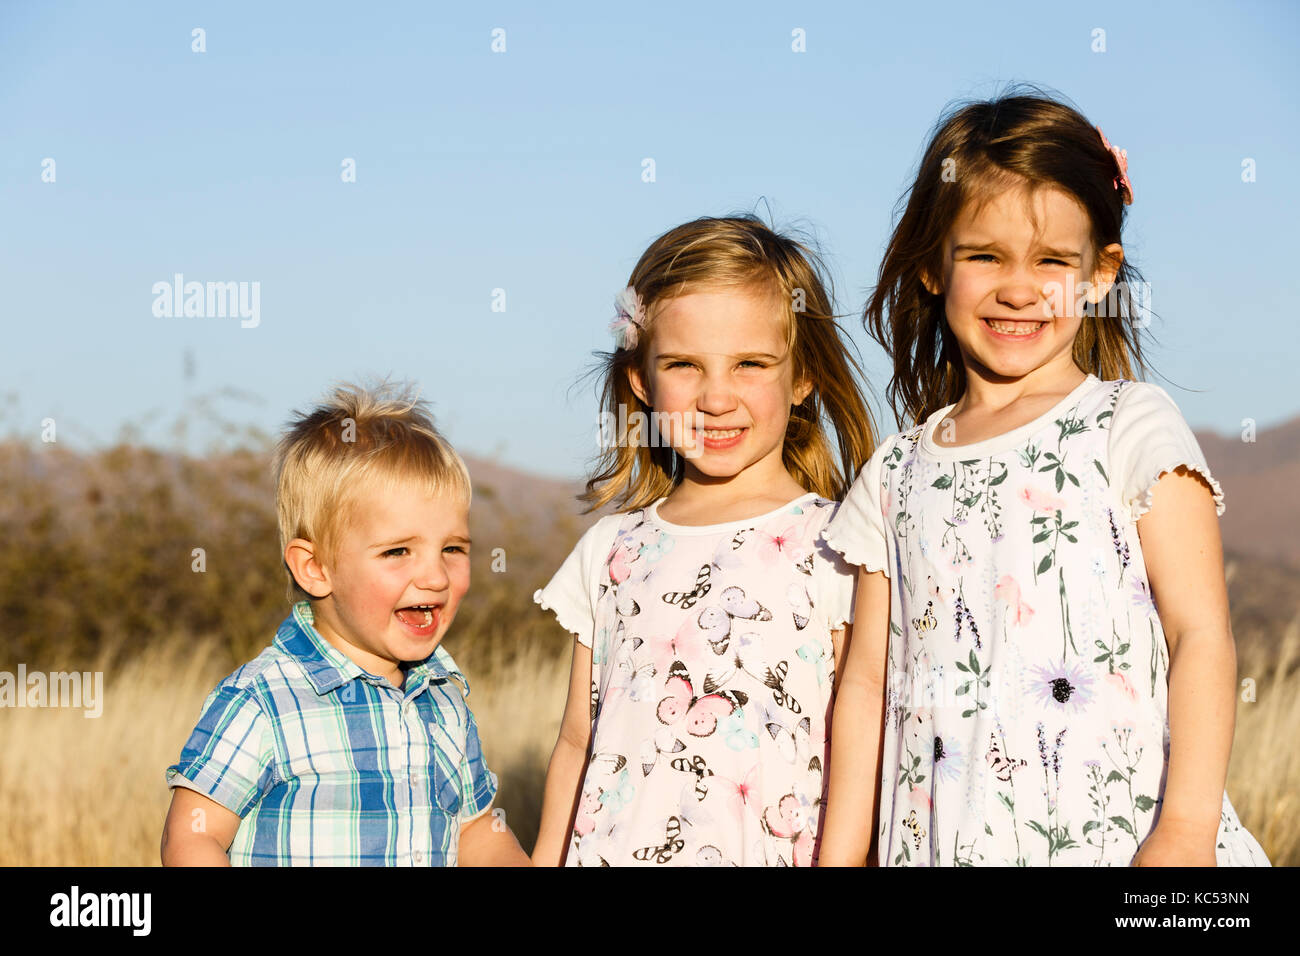 Three Siblings Boy And Two Girls Toddlers Namibia Stock Photo